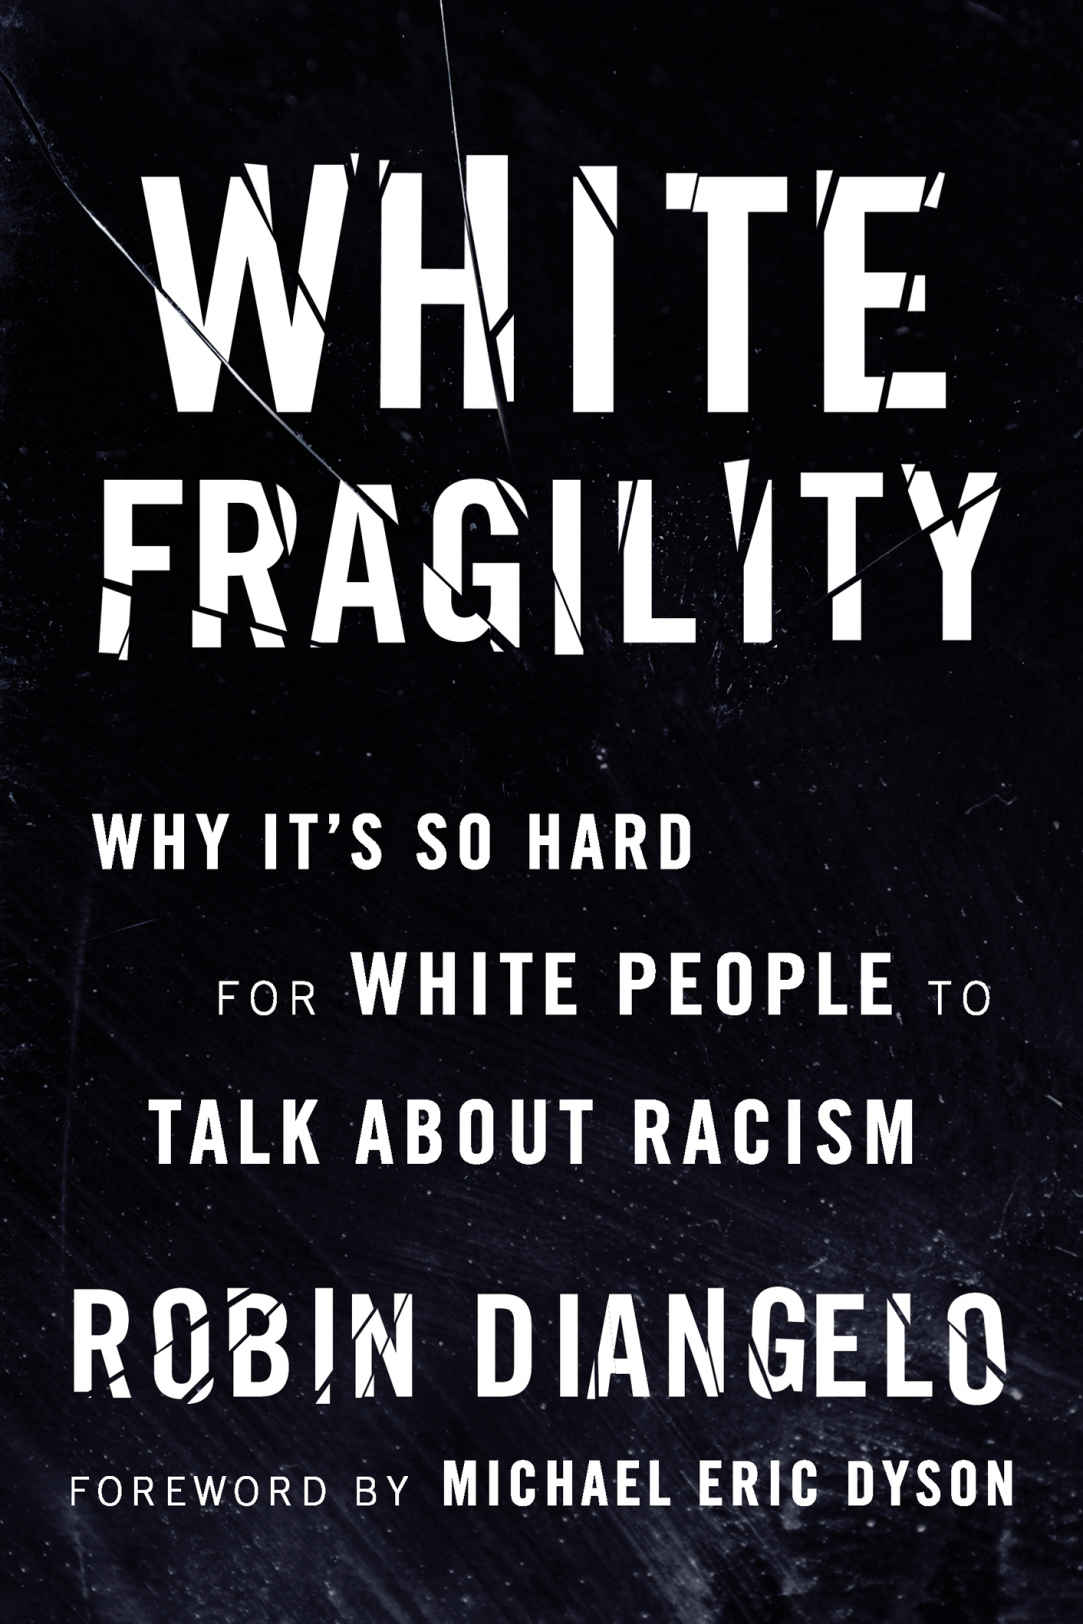 Cover of White Fragility: Why It's So Hard for White People to Talk About Racism by Robin J. DiAngelo